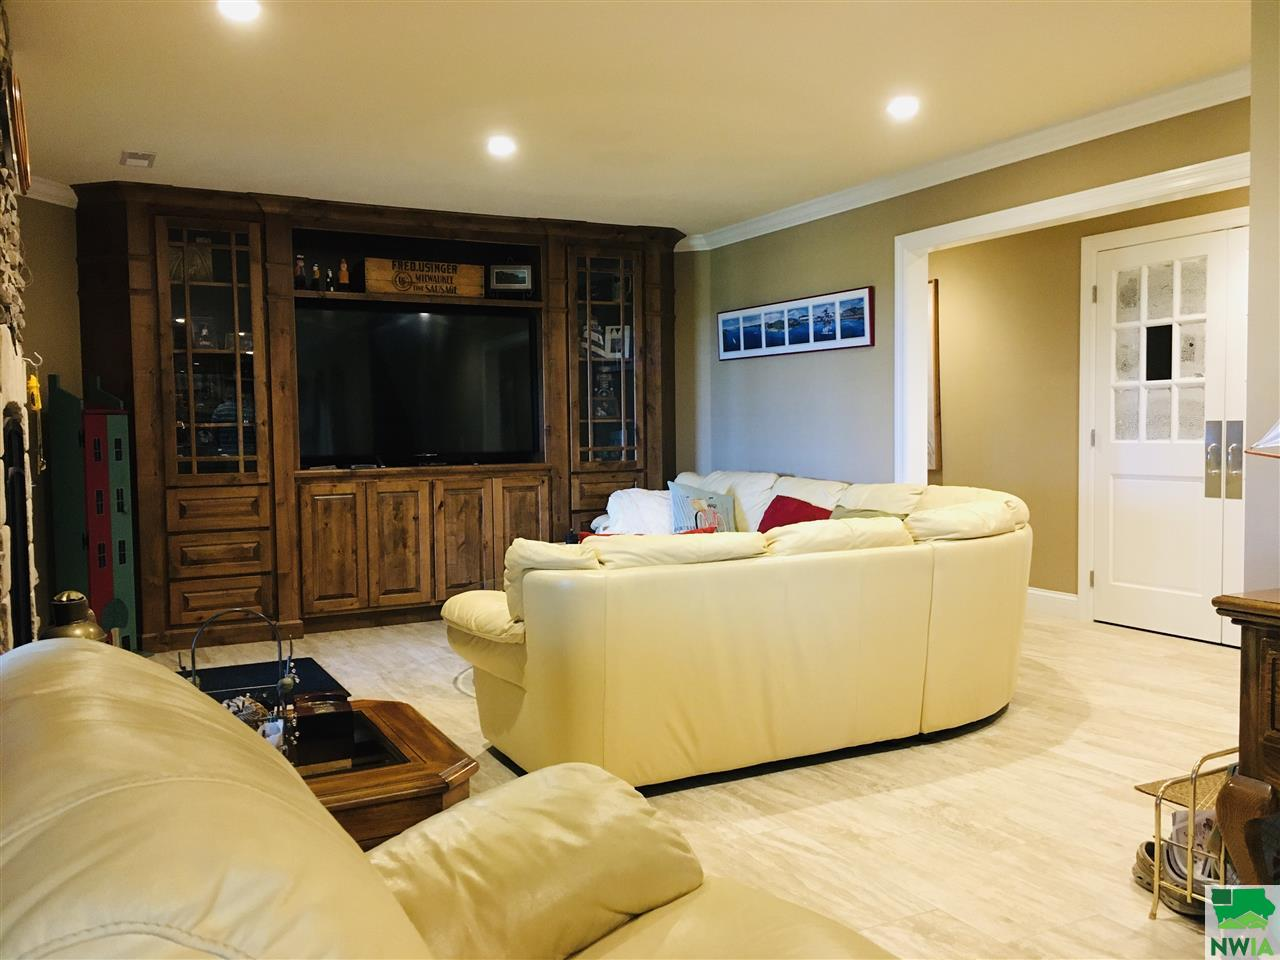 MLS# 810690 for Sale